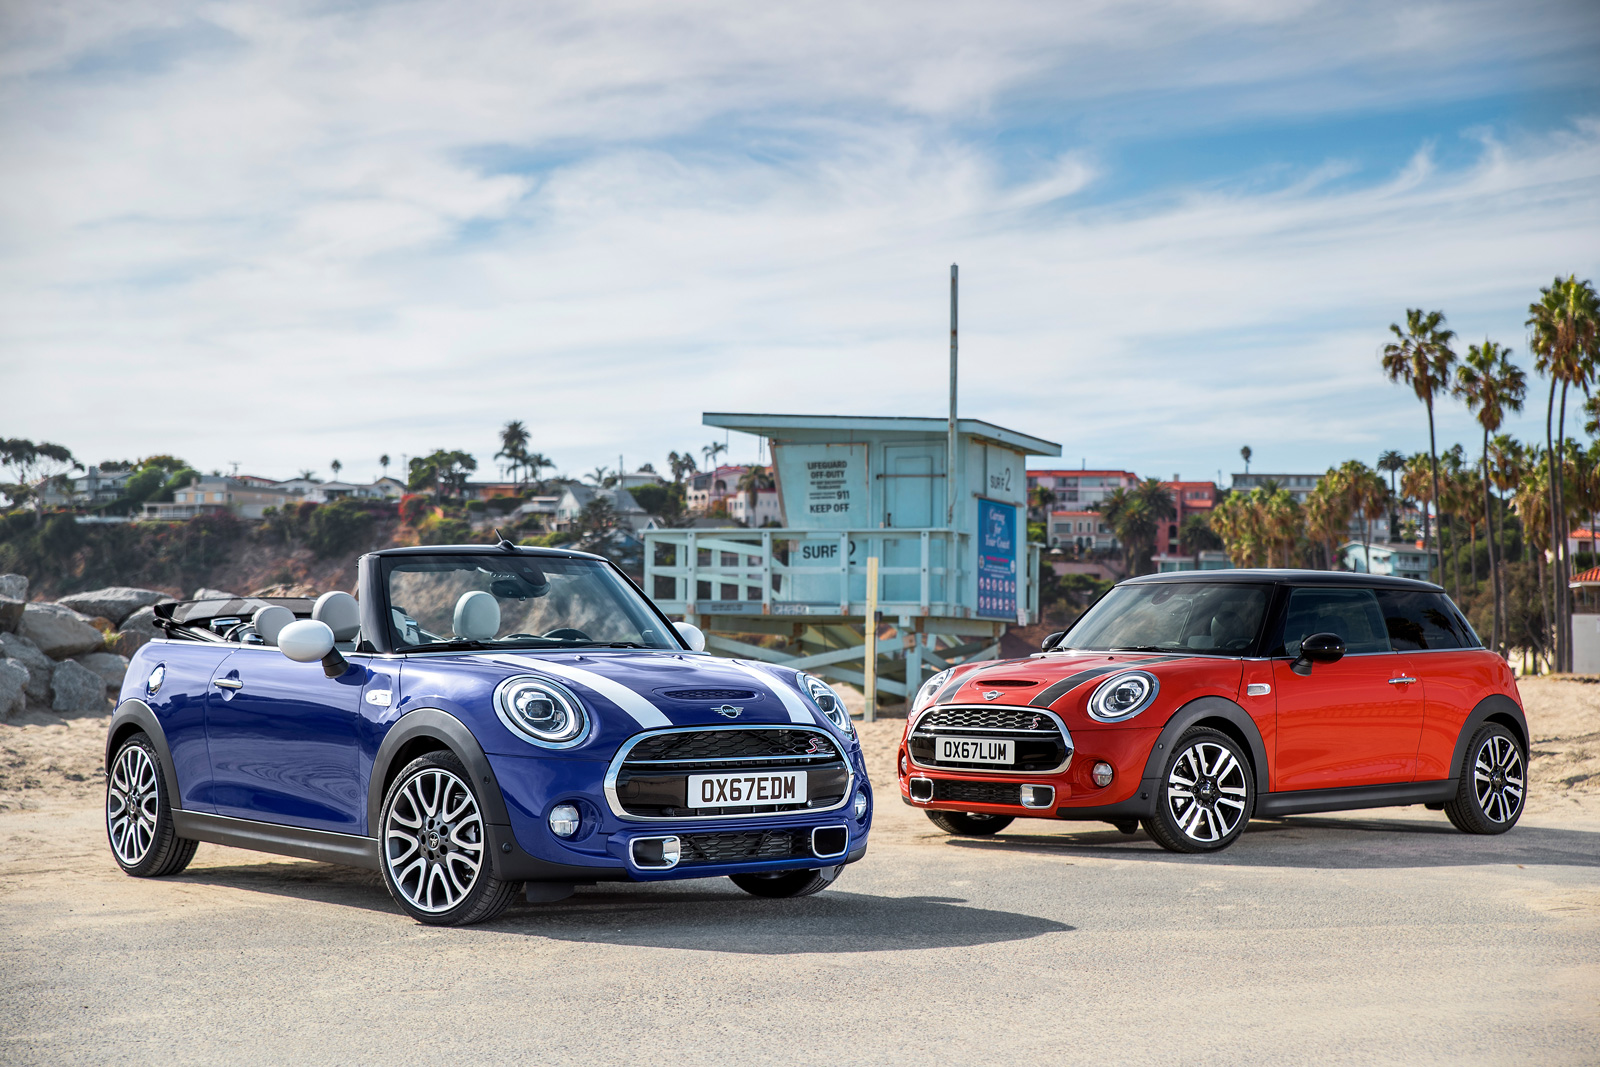 2019 mini cooper lineup receives minor updates news. Black Bedroom Furniture Sets. Home Design Ideas